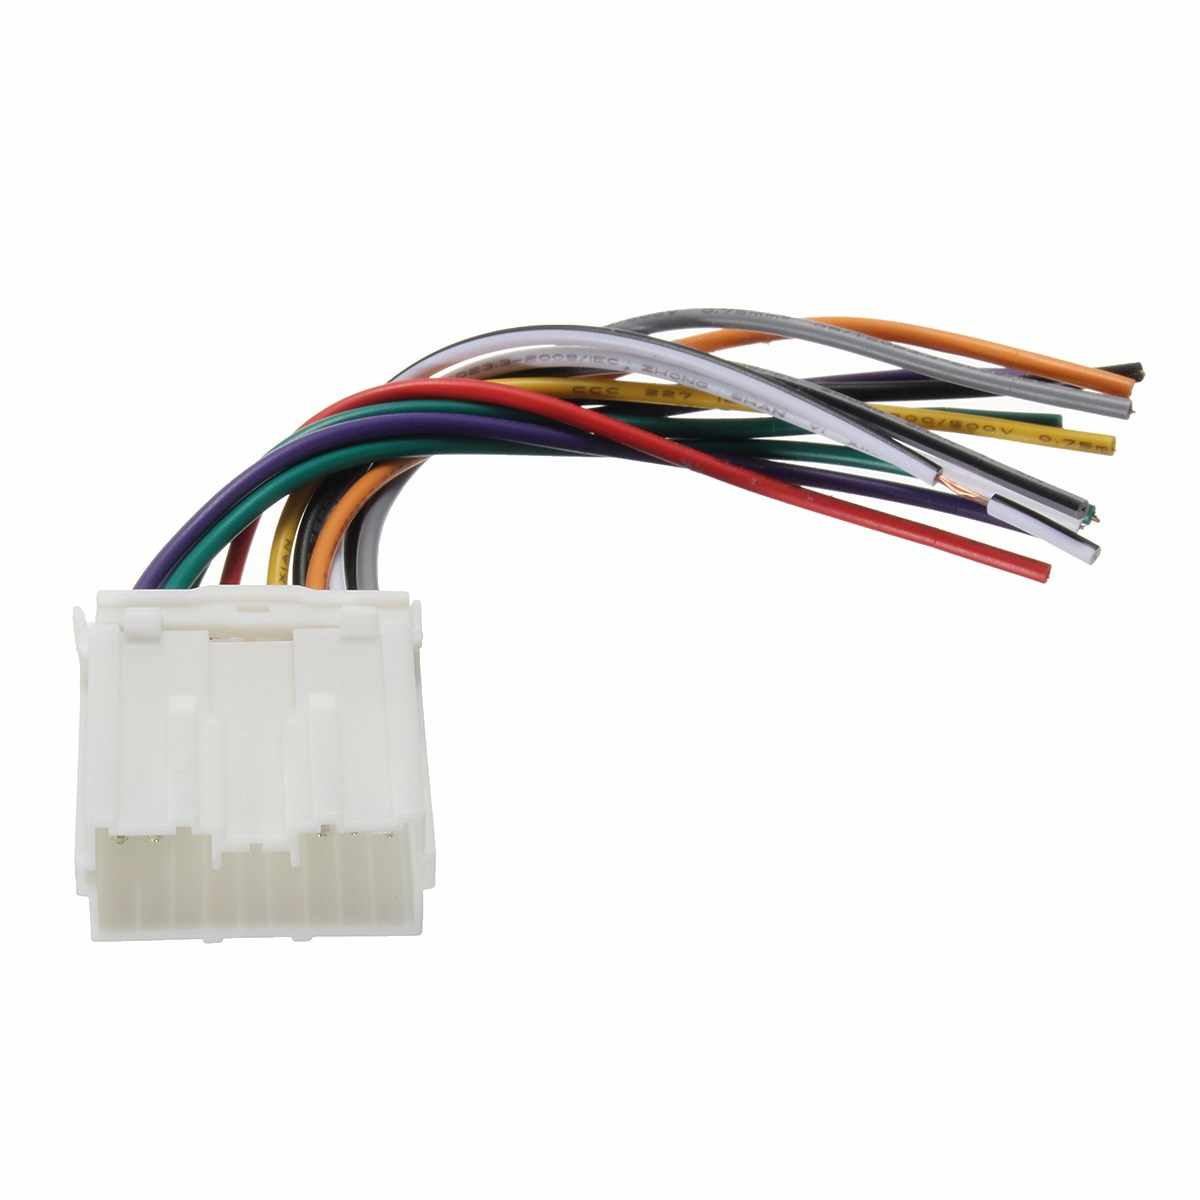 hight resolution of kroak car stereo radio cd player wiring harness wire aftermarket for mitsubishi dwh612